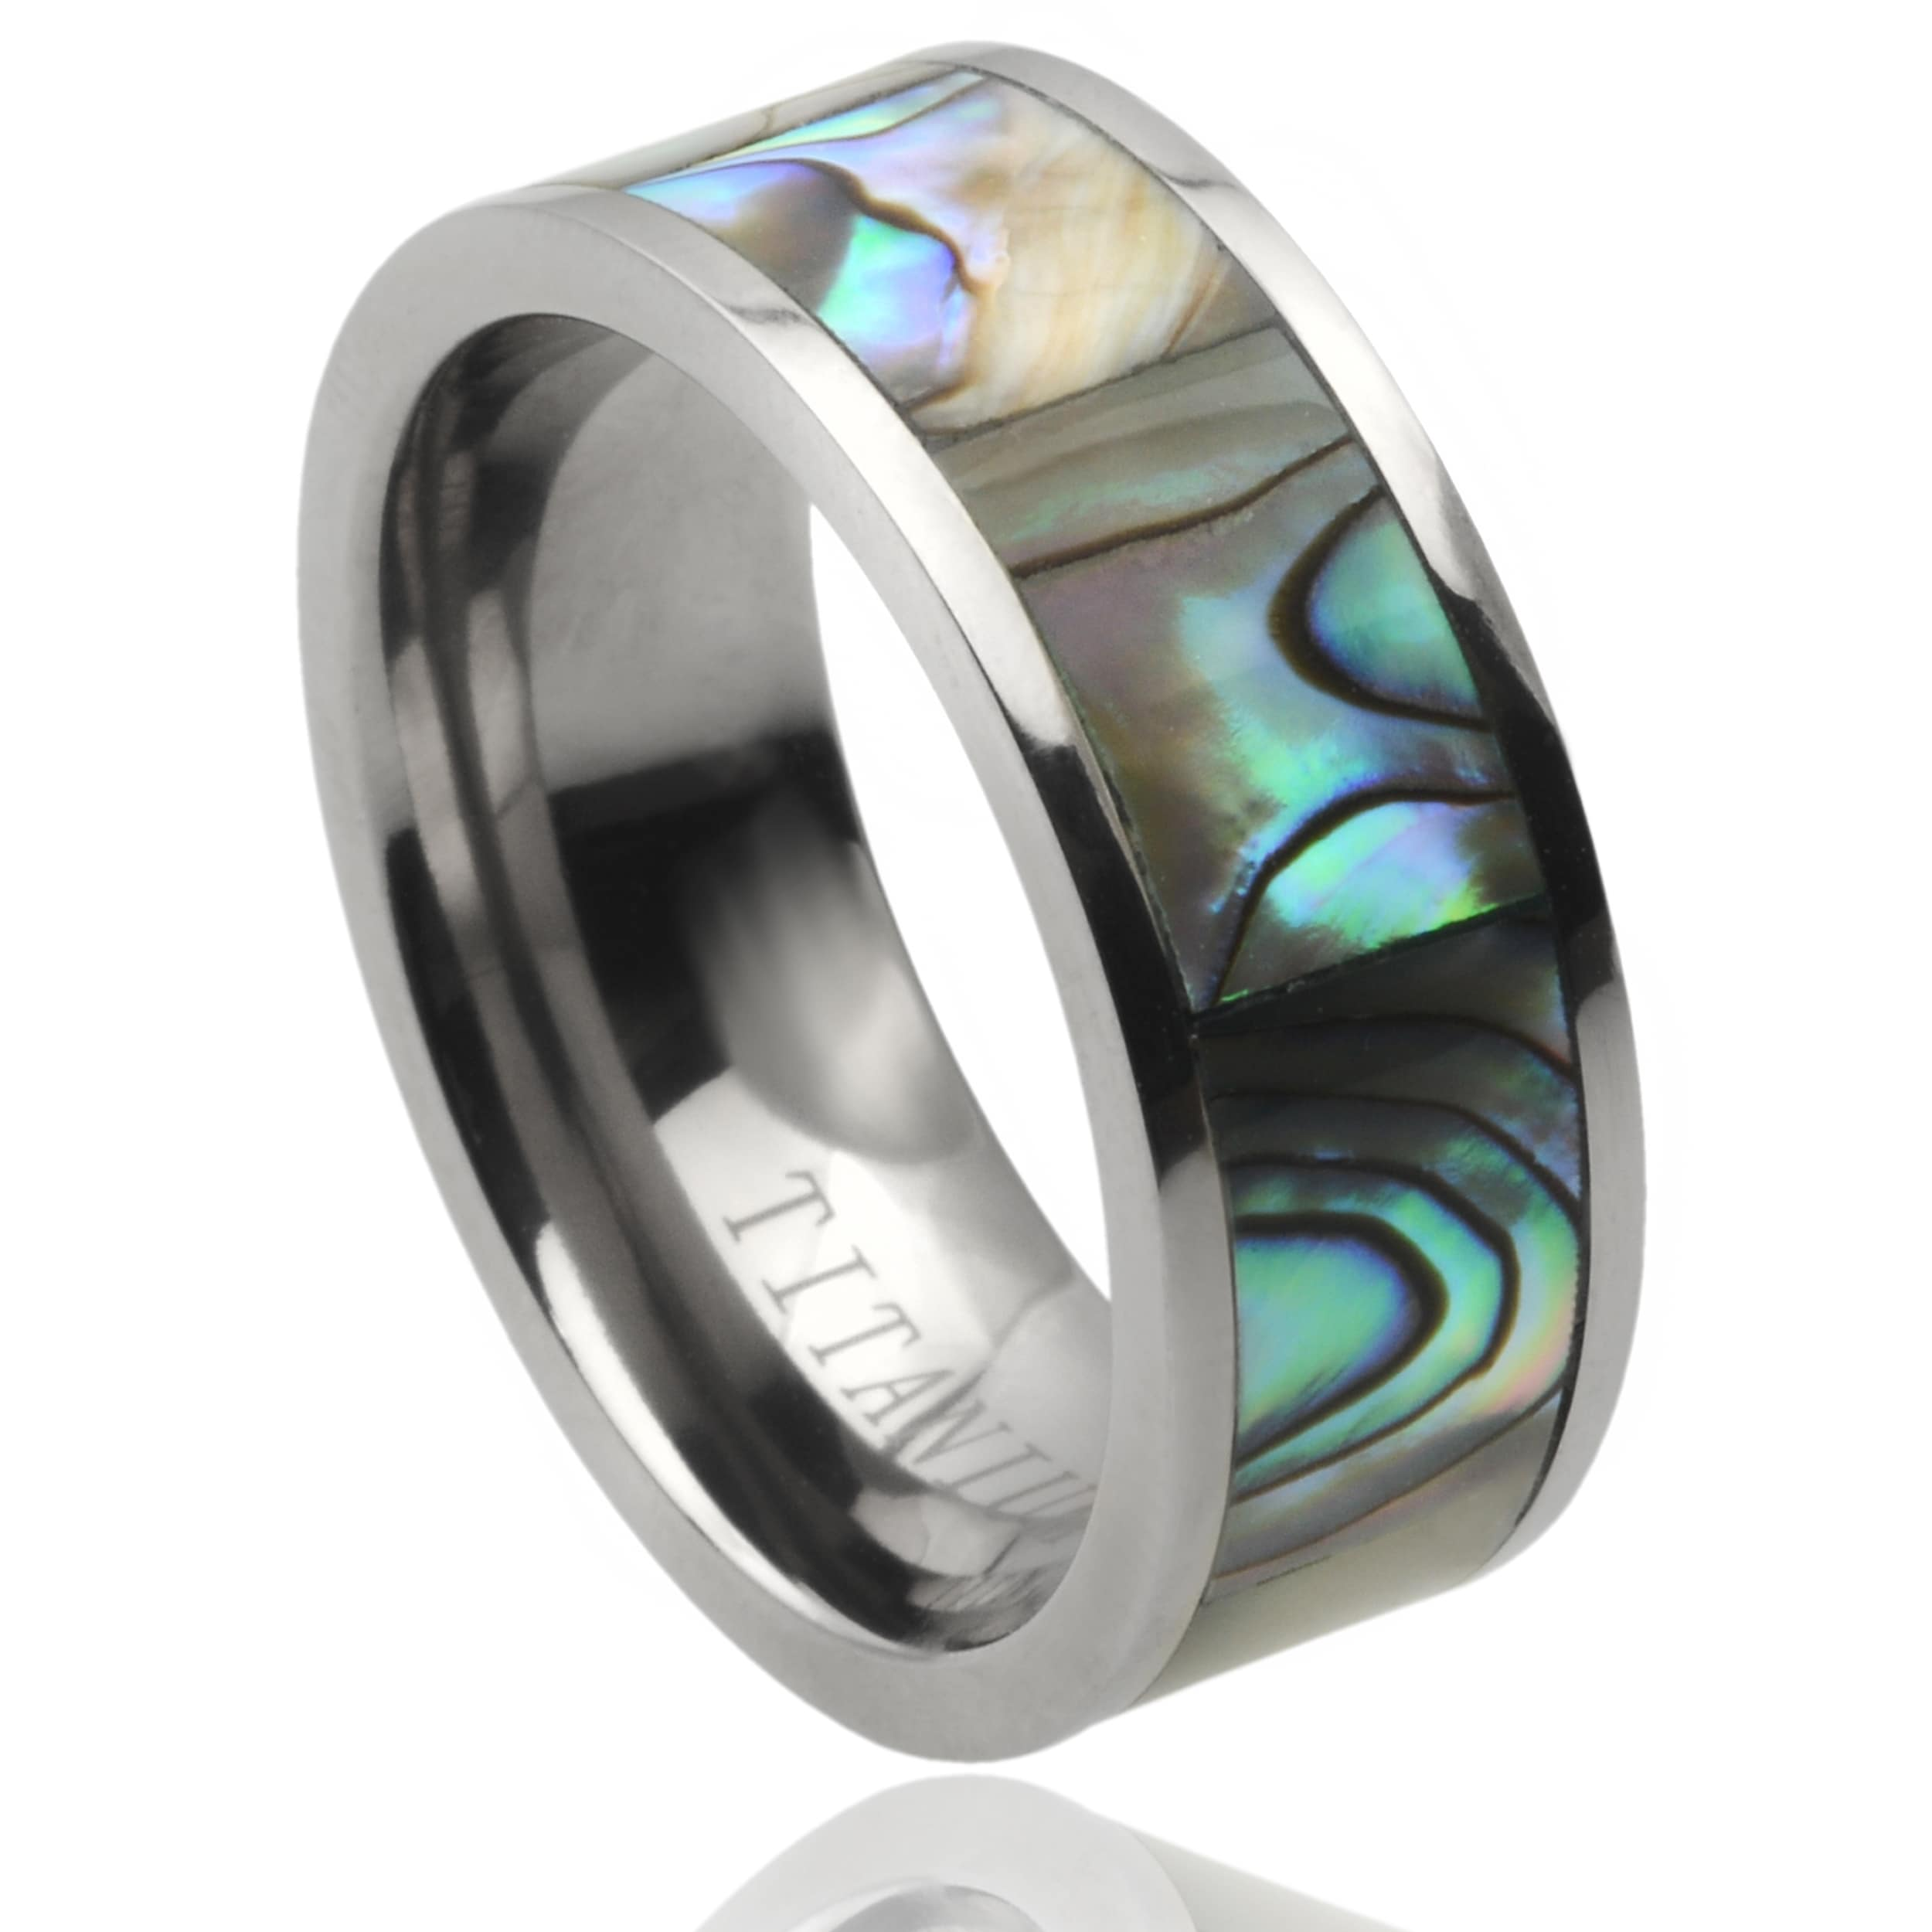 tungsten ring abalone s and rings inblue wide wedding elegant diamond shell women men luxury bands mother of pearl for